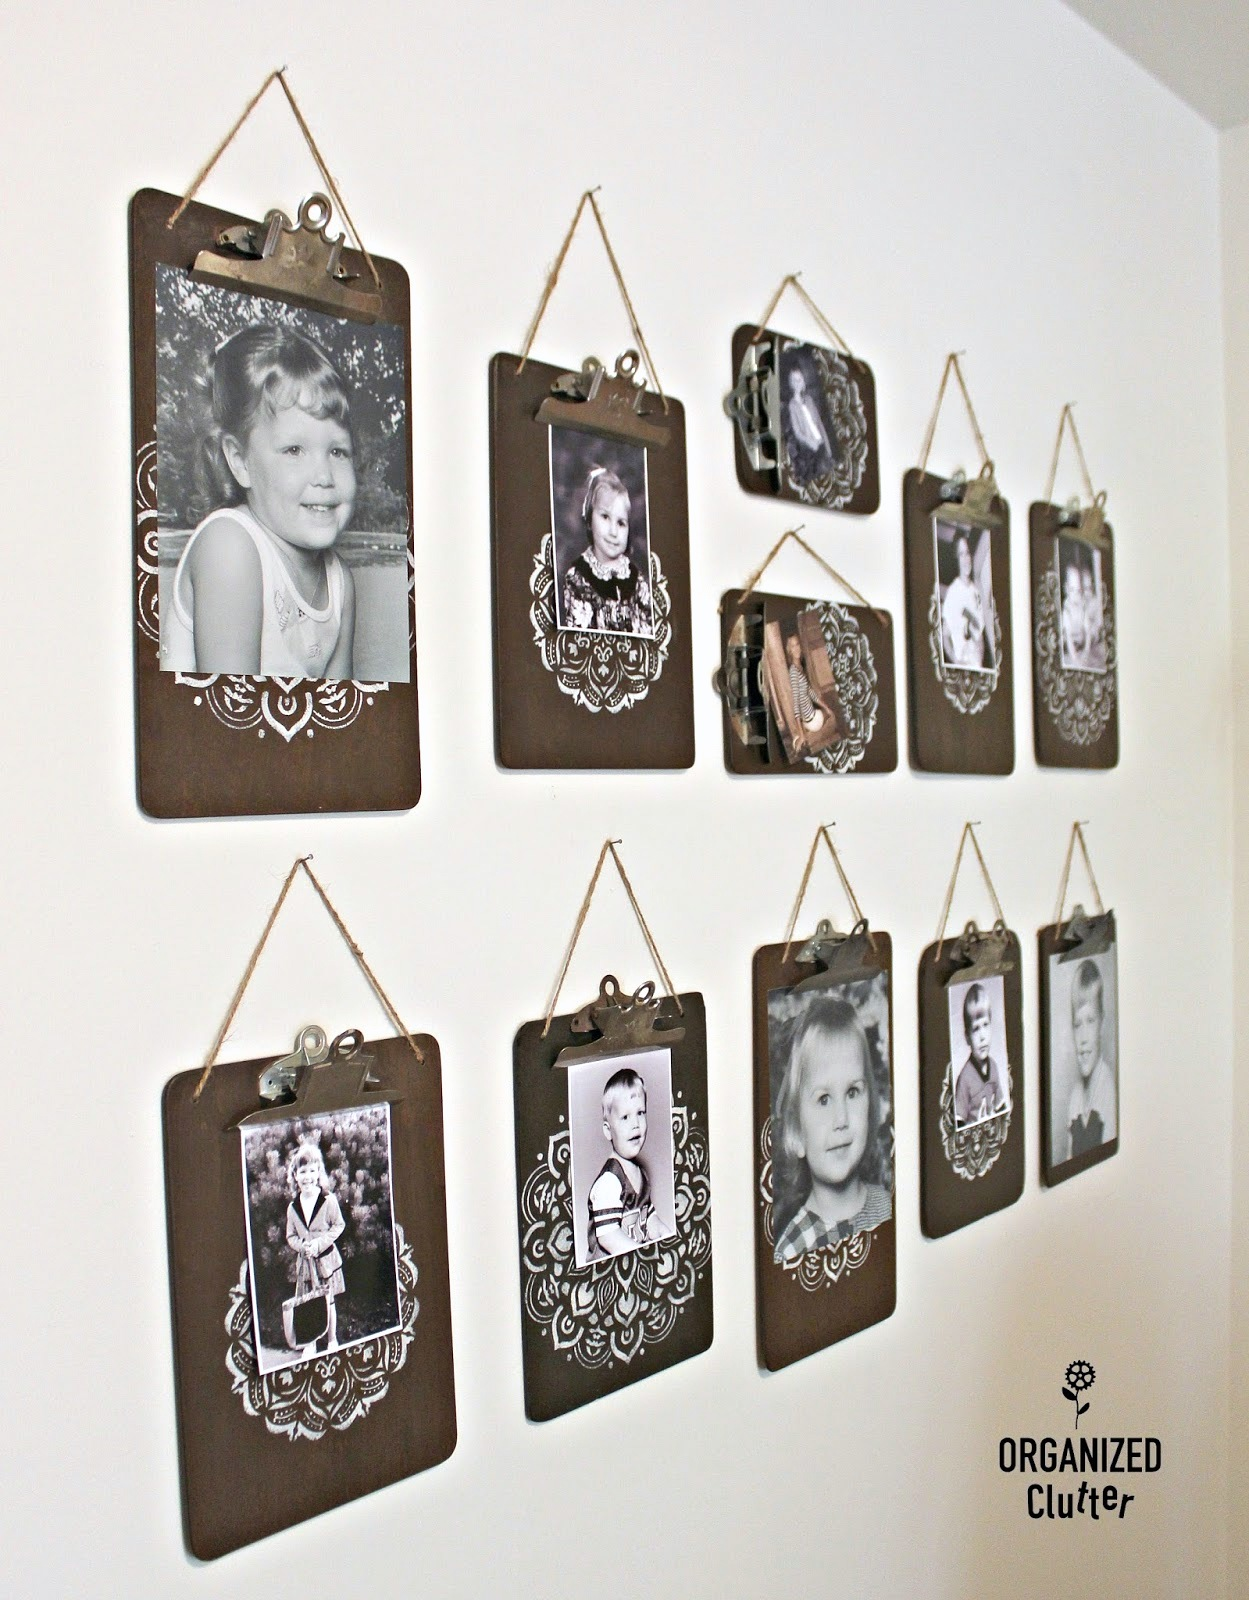 Clip board picture frame wall gallery by Organized Clutter, featured on Funky Junk Interiors